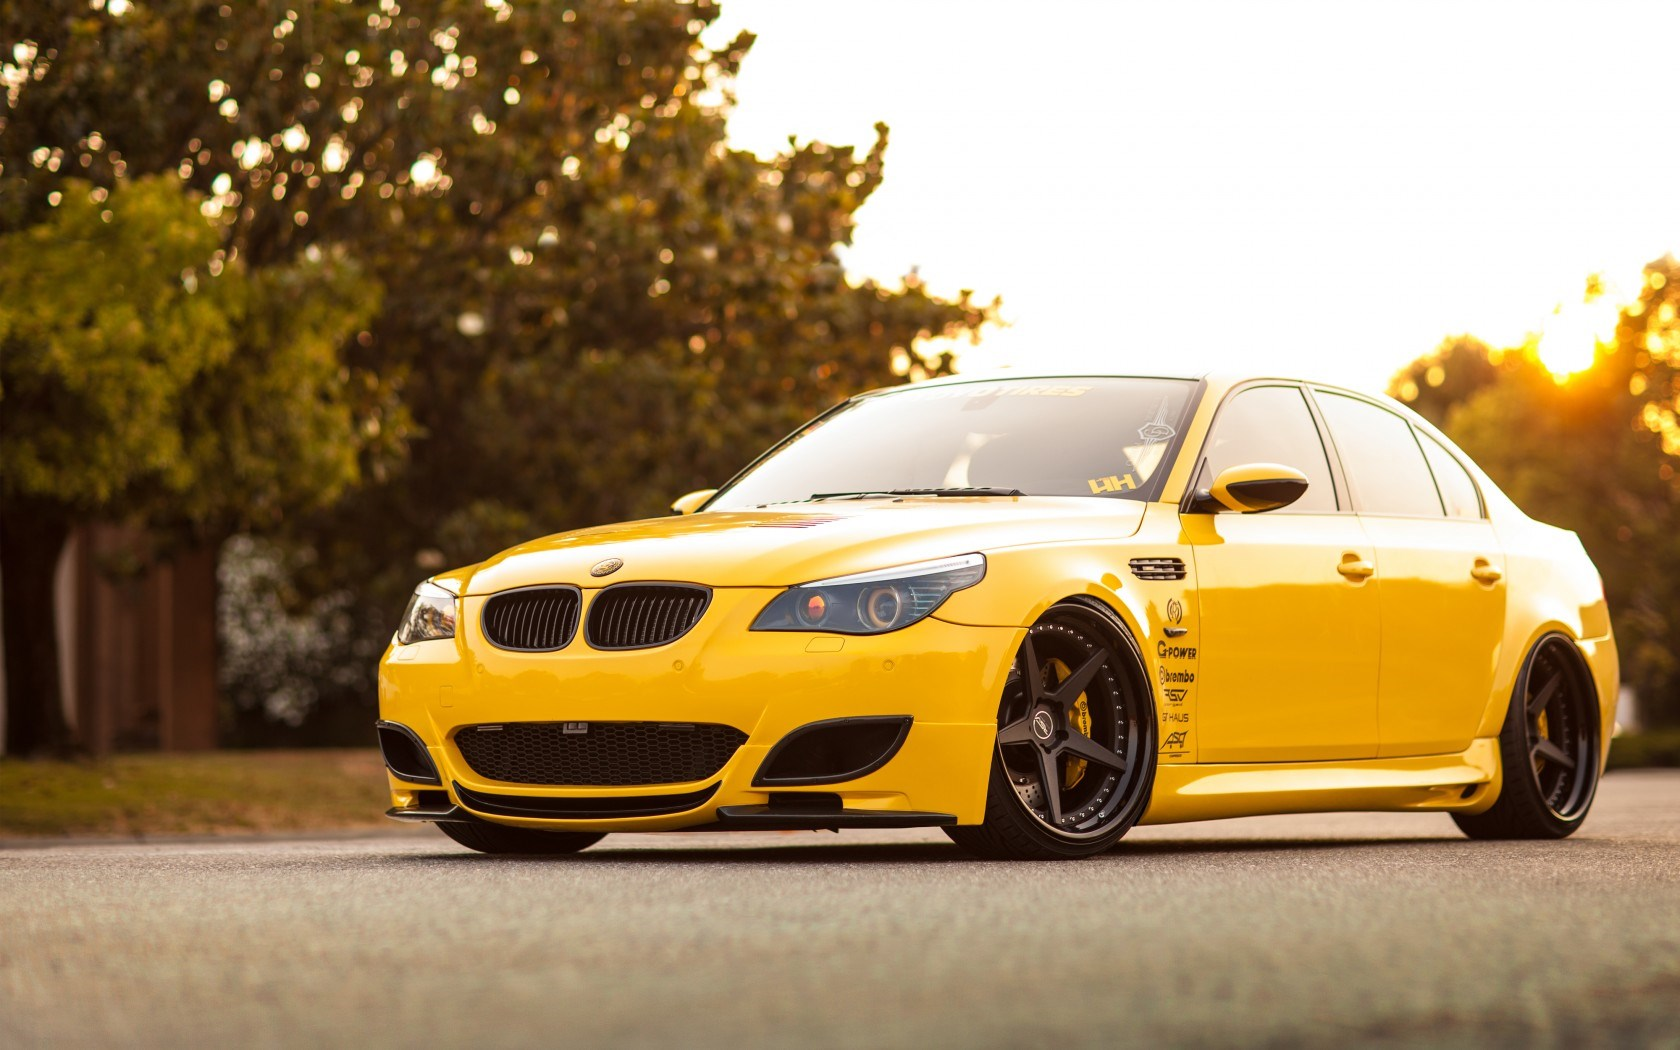 BMW M5 Yellow Car Tuning